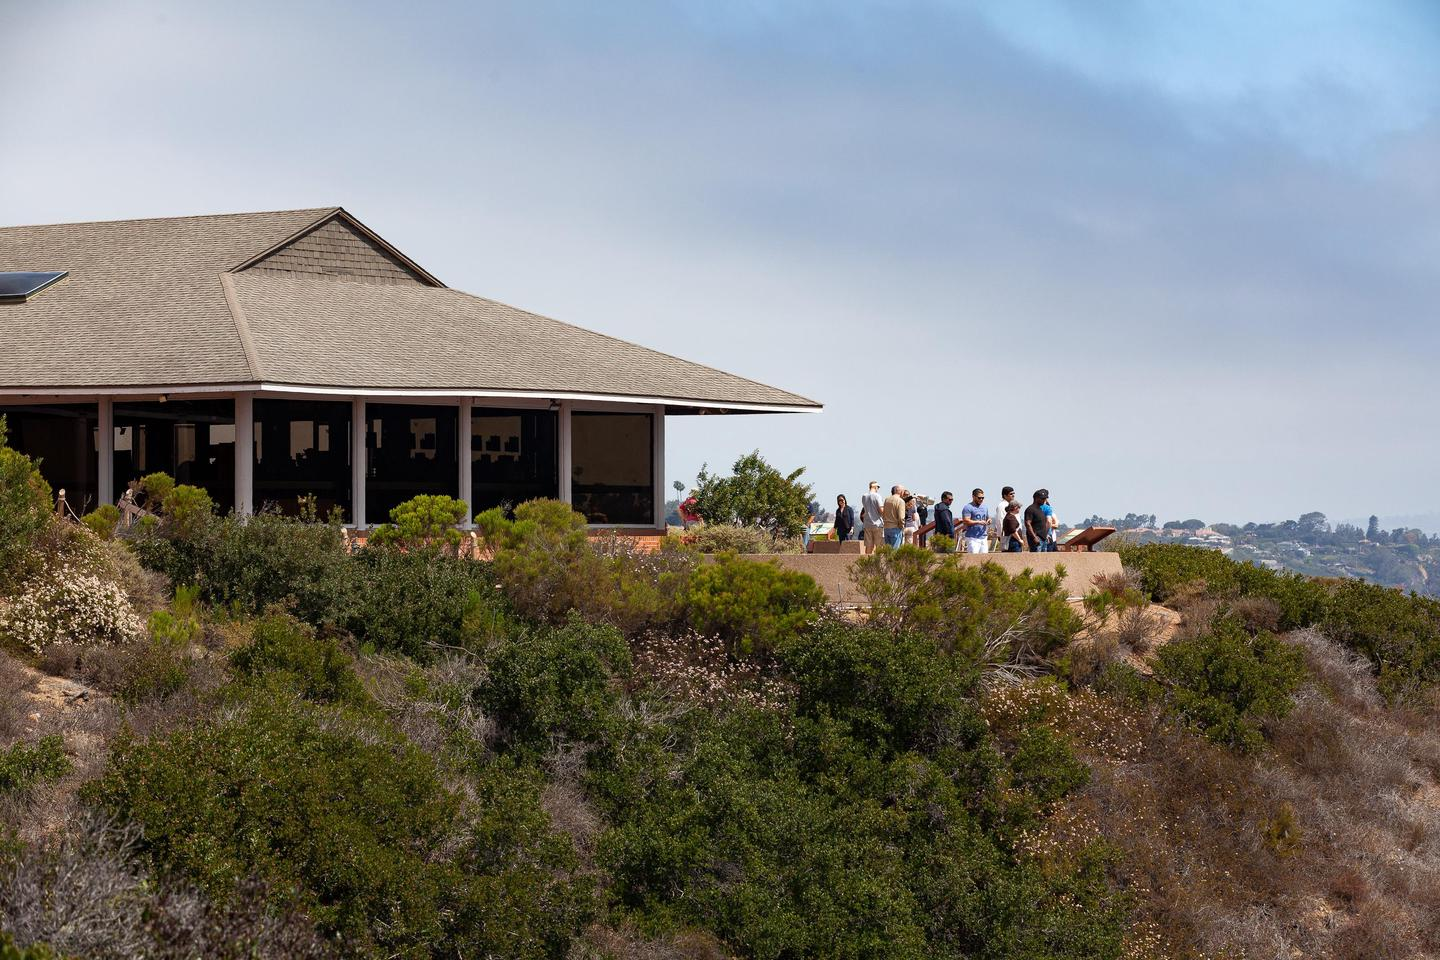 View Building looking to the northThe View Building at the Visitor Center with people at the scenic overlook over San Diego Bay.